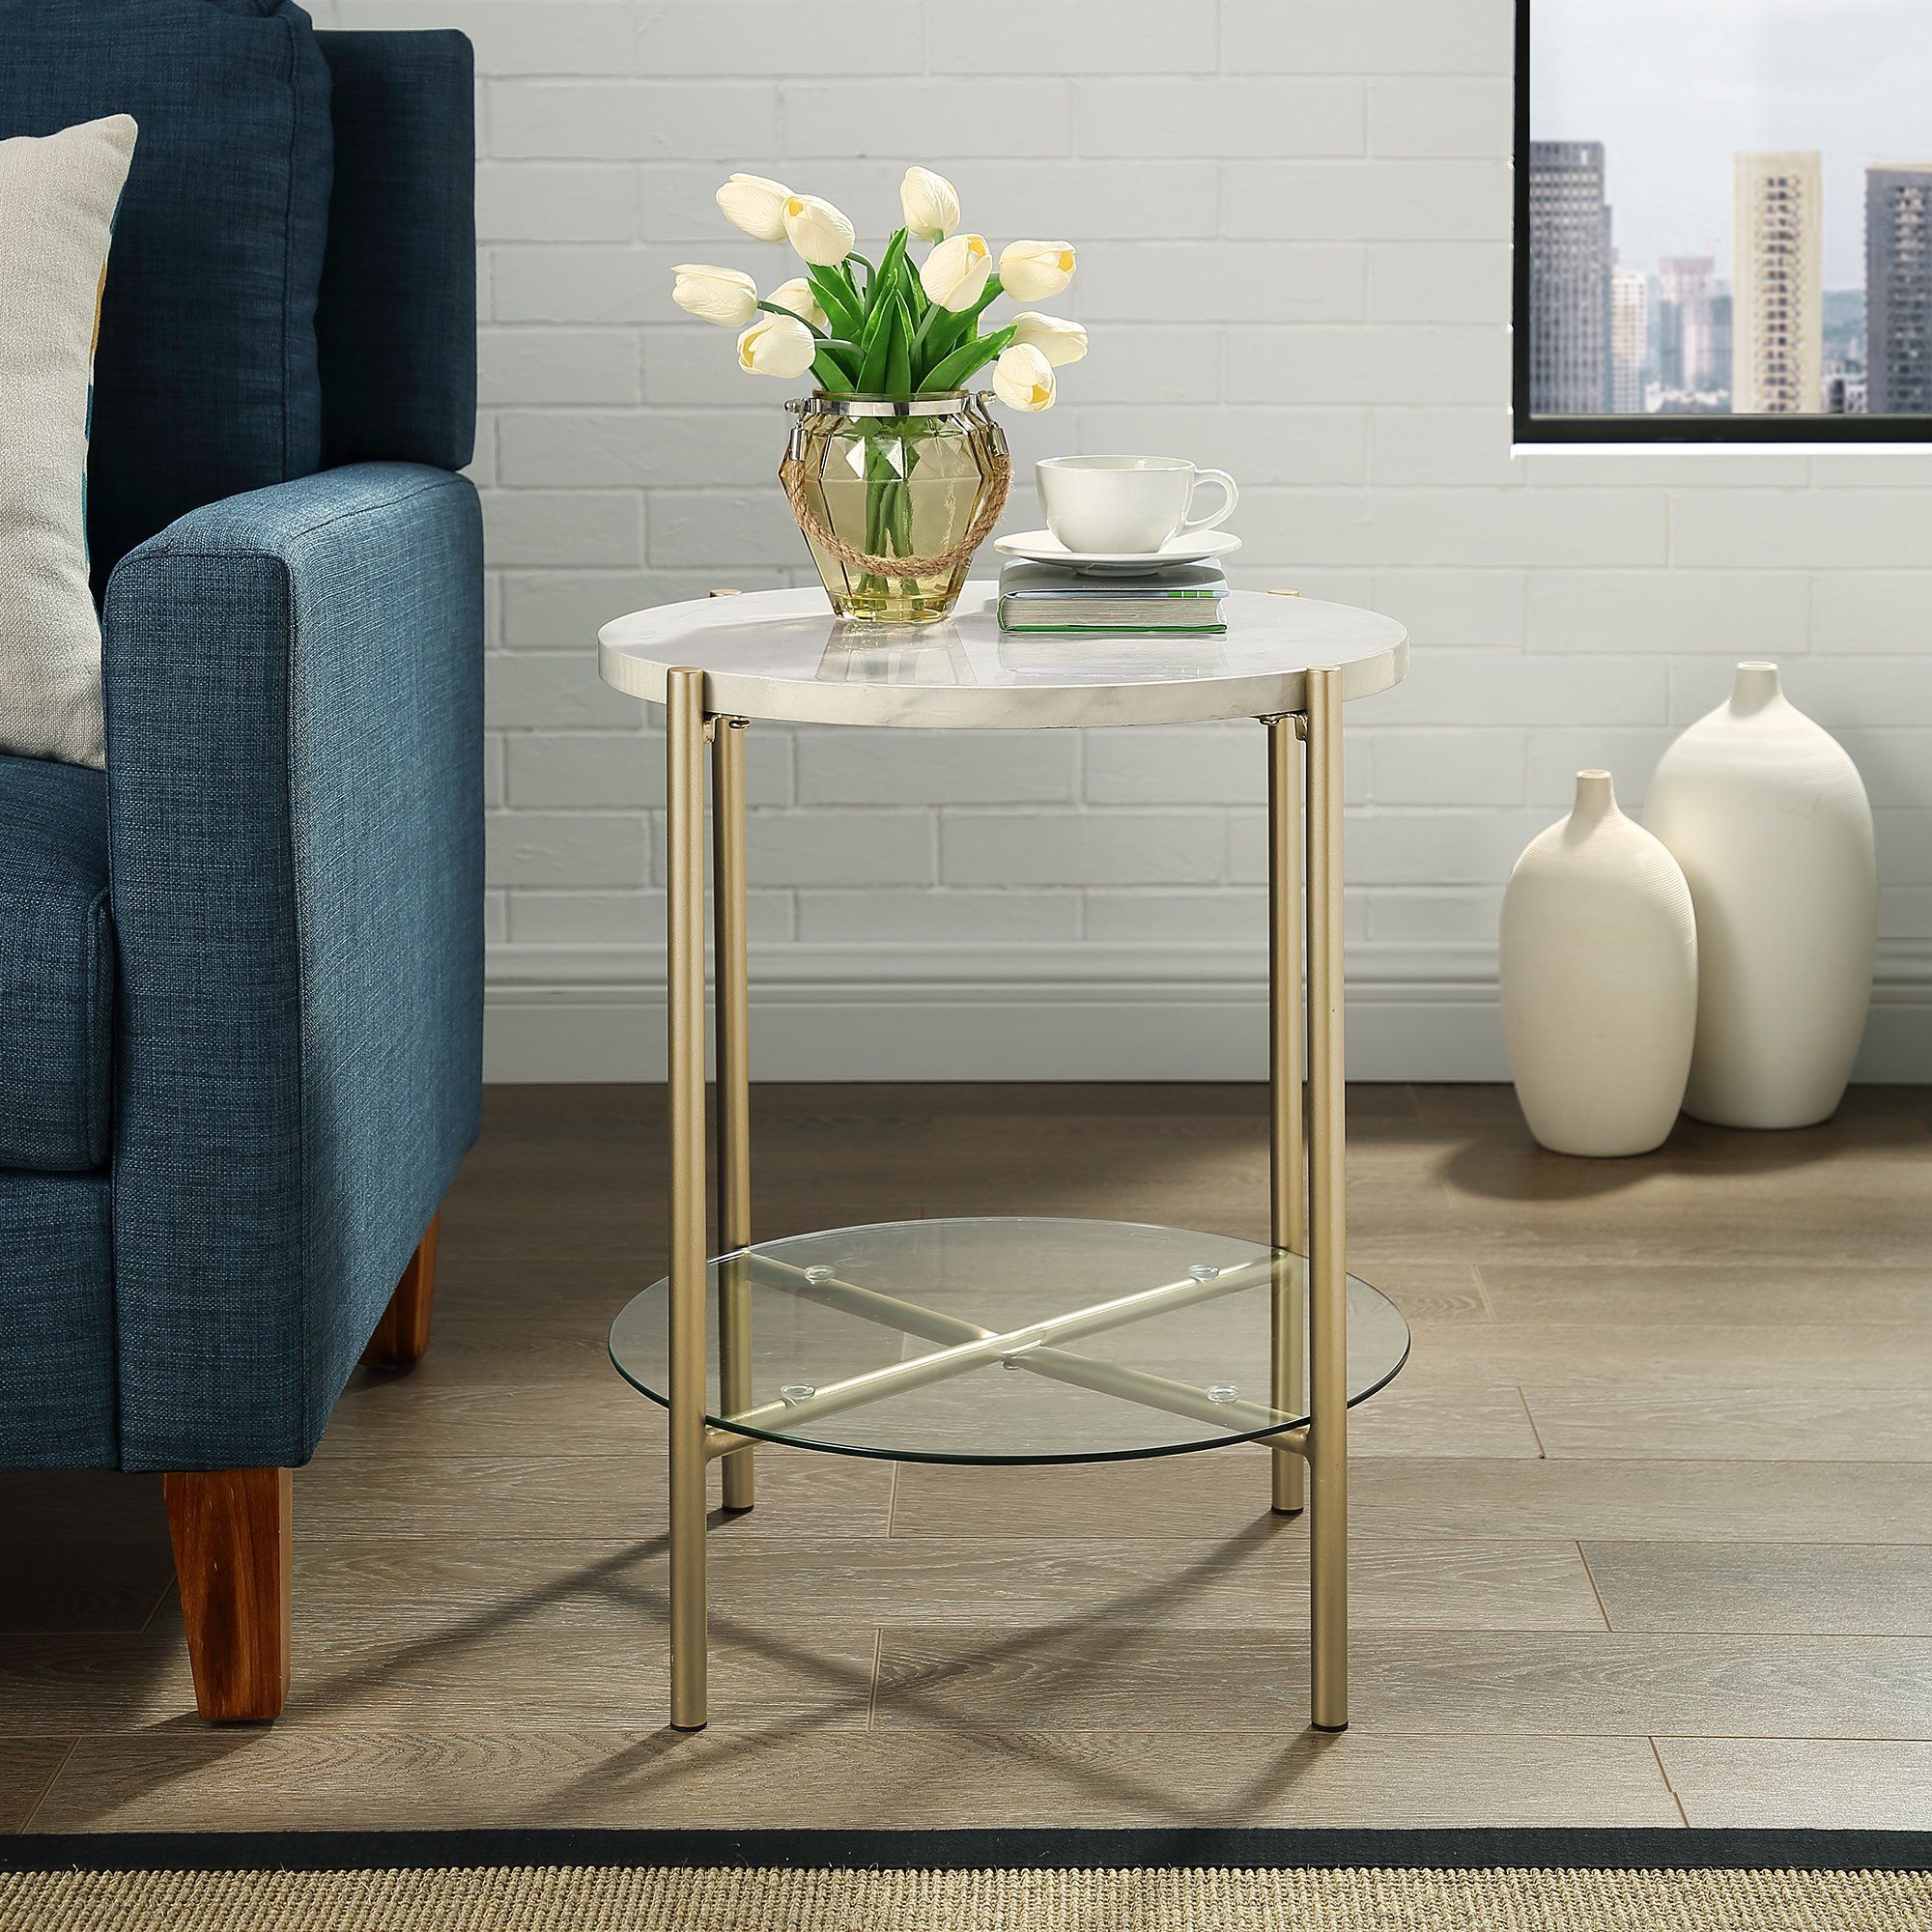 Lola Faux White Marble End Table By Bellamy Studios Walmart Com In 2020 Marble End Tables Marble Room Decor End Tables